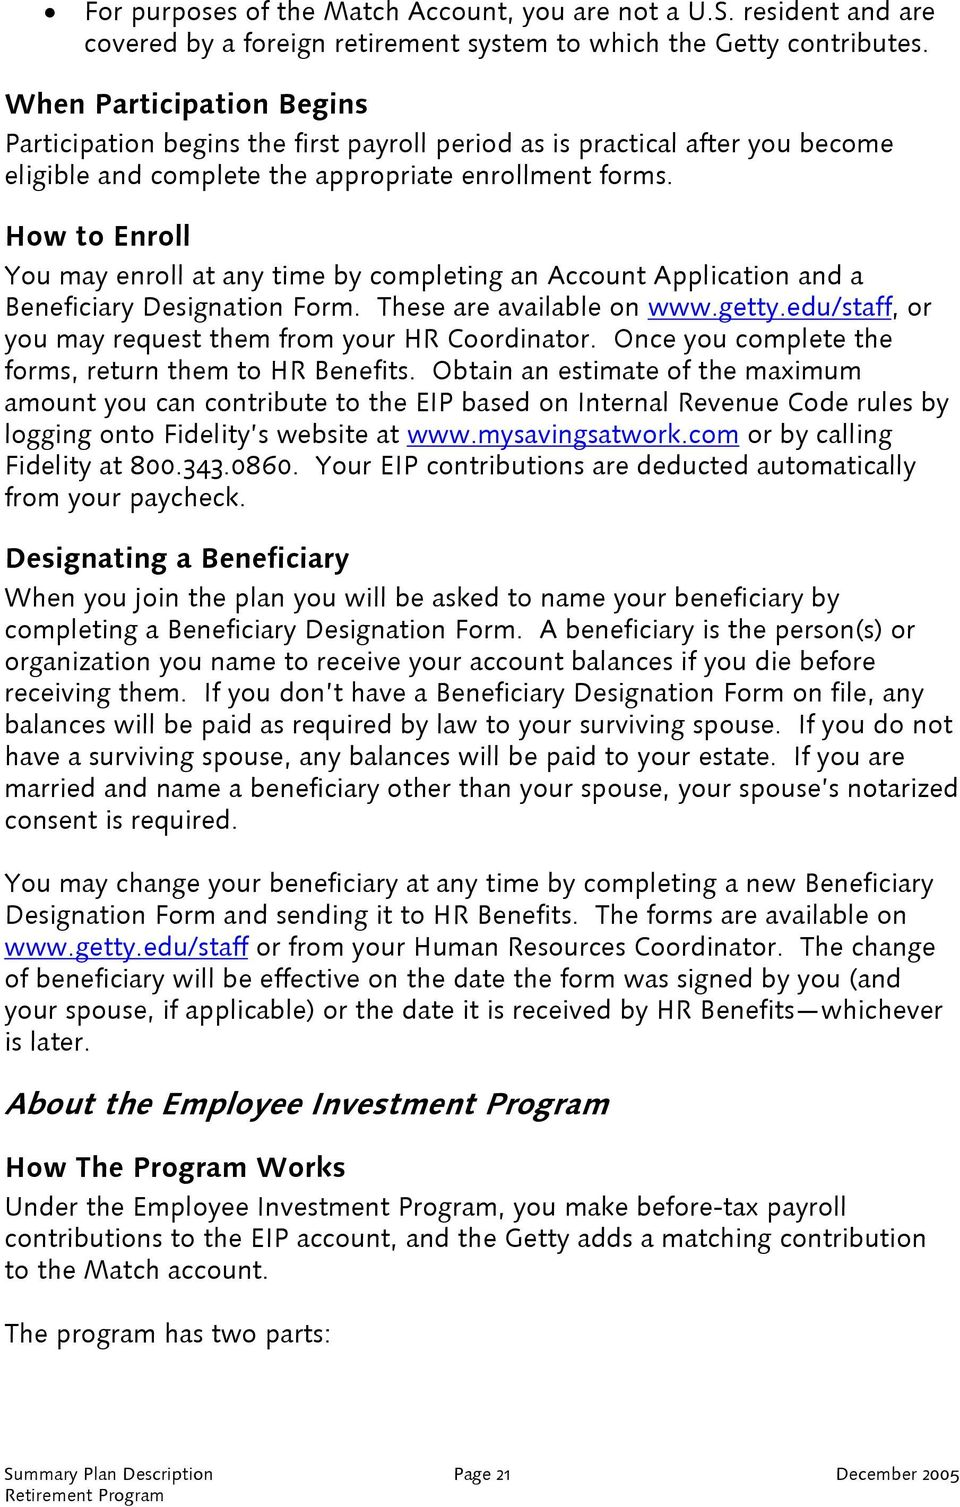 How to Enroll You may enroll at any time by completing an Account Application and a Beneficiary Designation Form. These are available on www.getty.